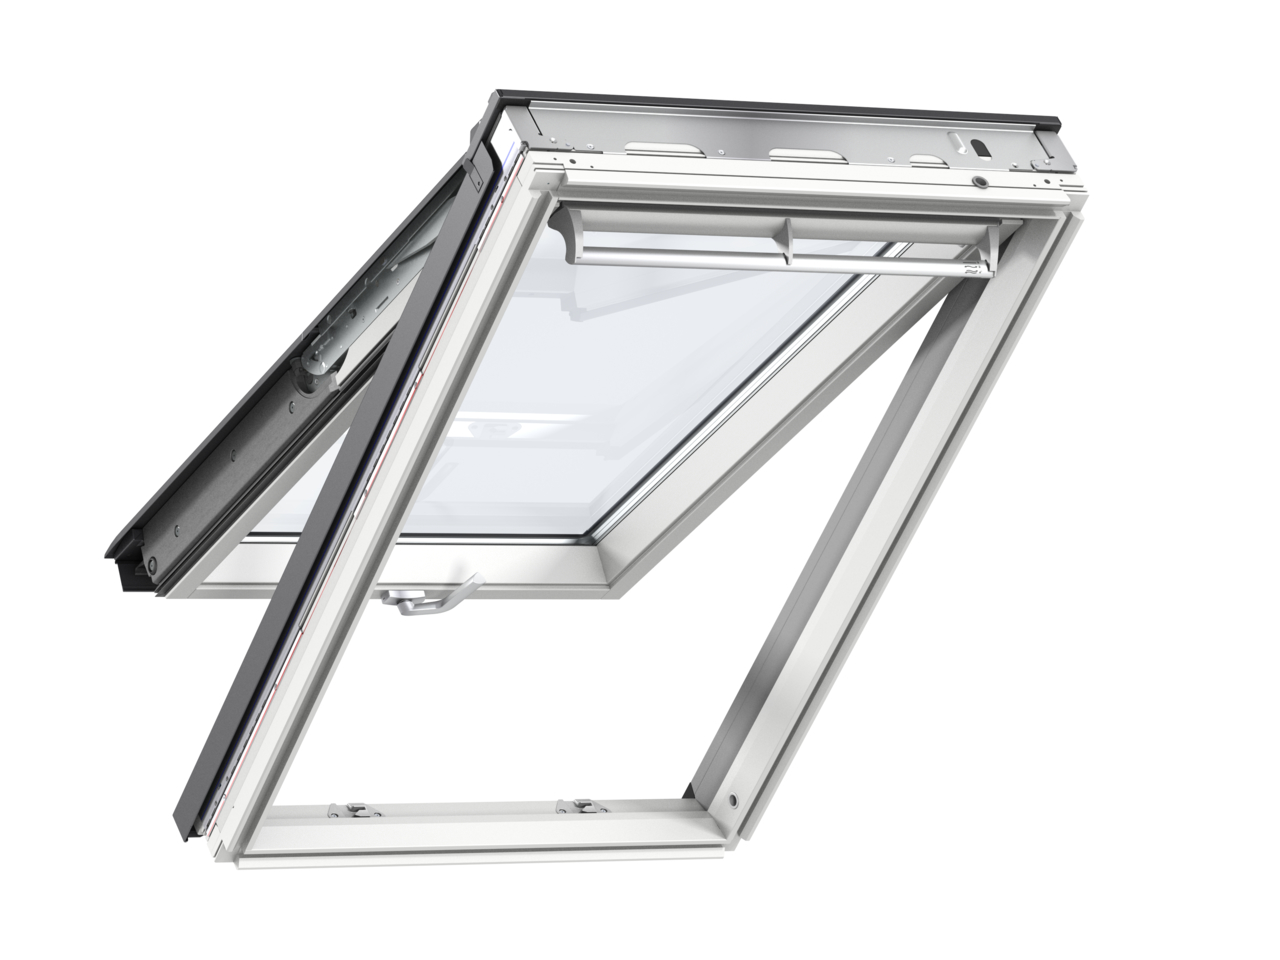 Velux GPL MK08 780 x 1400mm Top Hung 60Pane Roof Window - White Painted